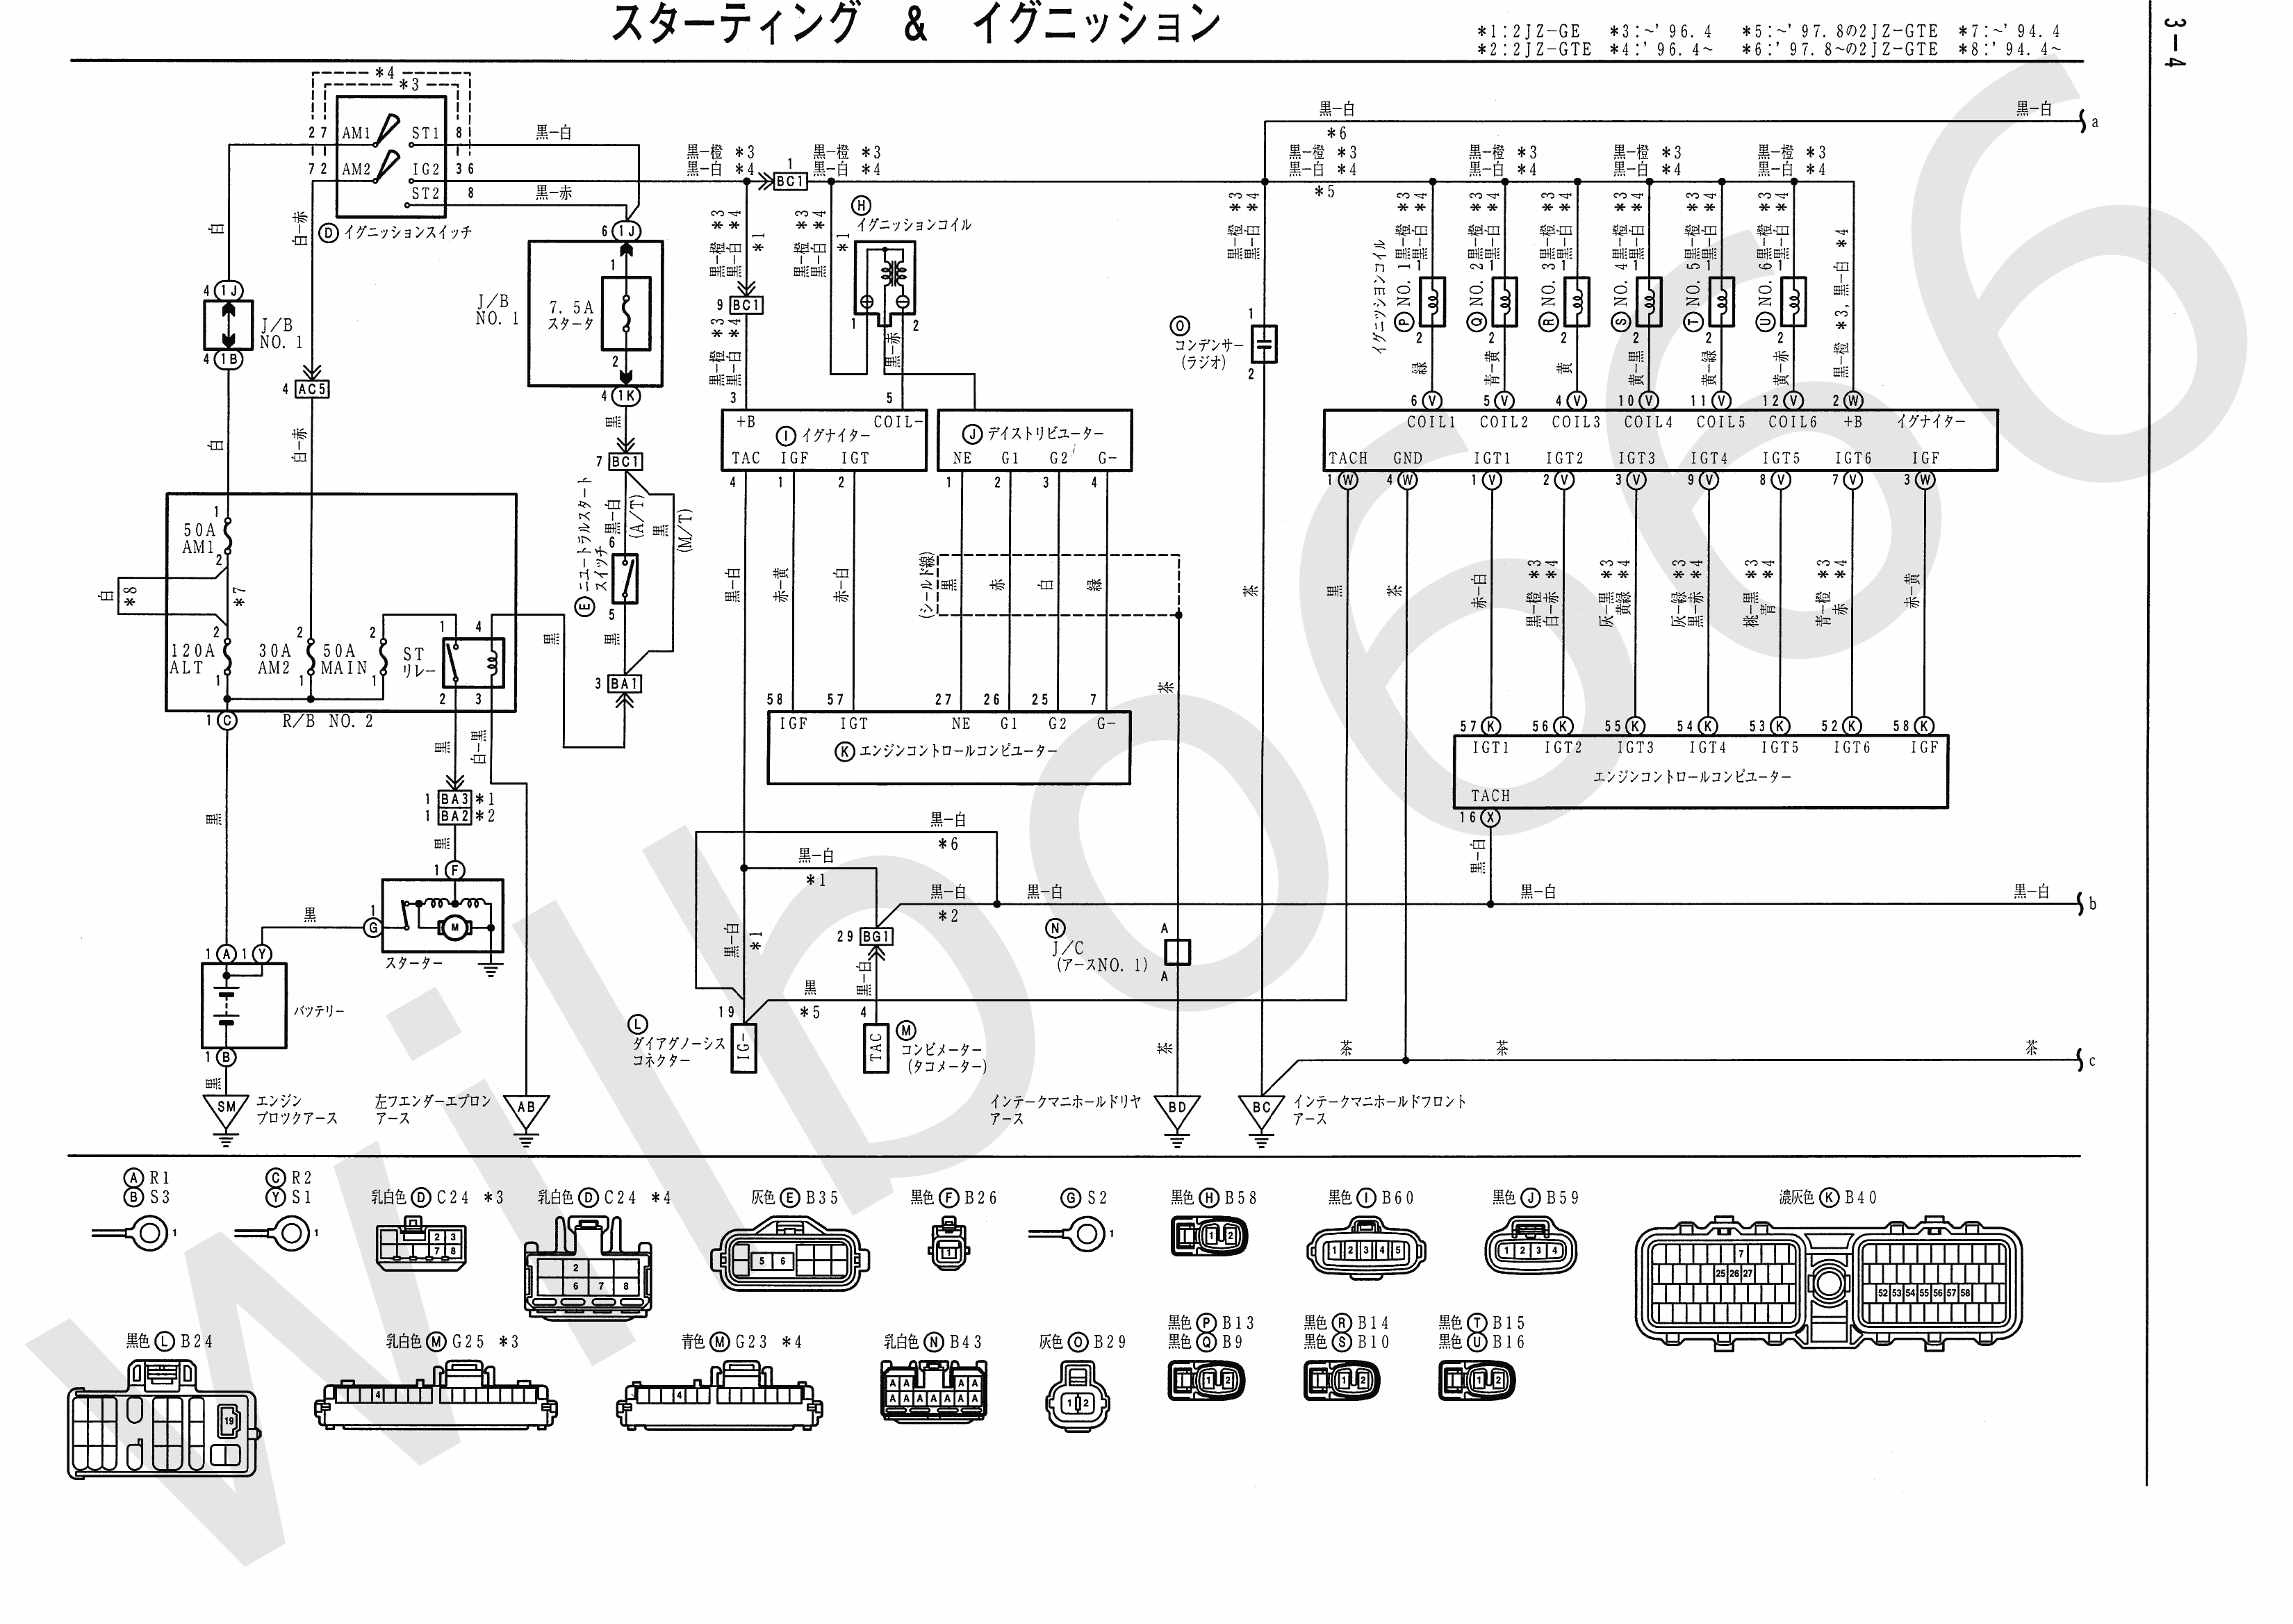 JZA80 Electrical Wiring Diagram 6742505 3 4 100 [ mazda 3 ecu wiring diagram ] mazda 3 engine diagram 2010  at eliteediting.co